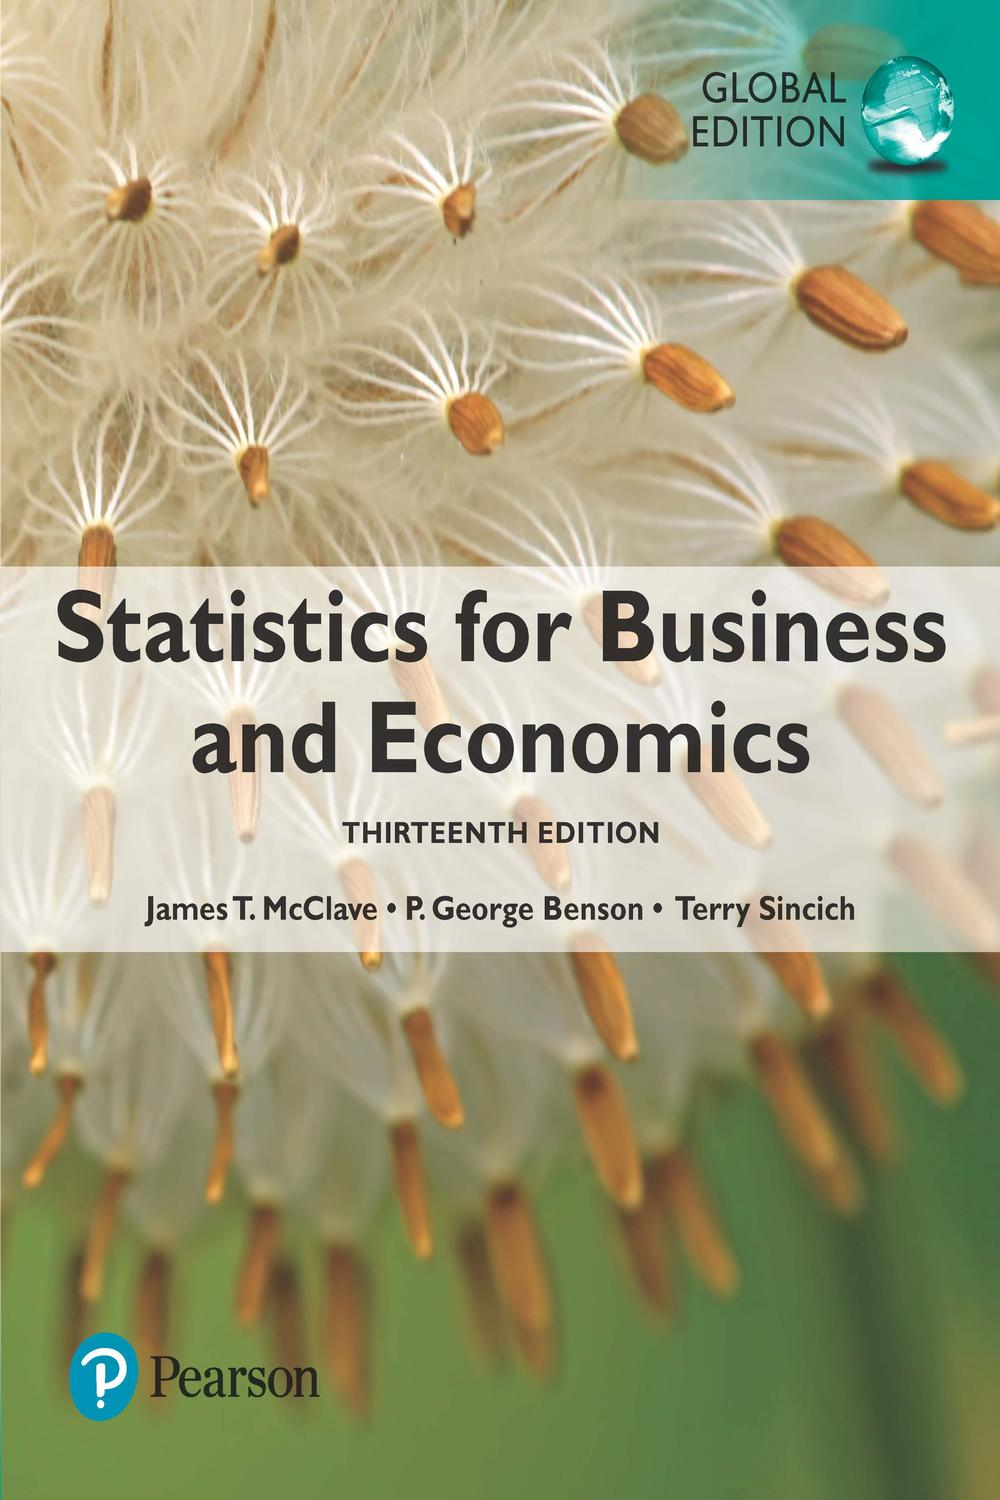 Statistics For Business And Economics Global Edition By James T Mcclave P George Benson Terry Sincich Pdf Read Online Perlego